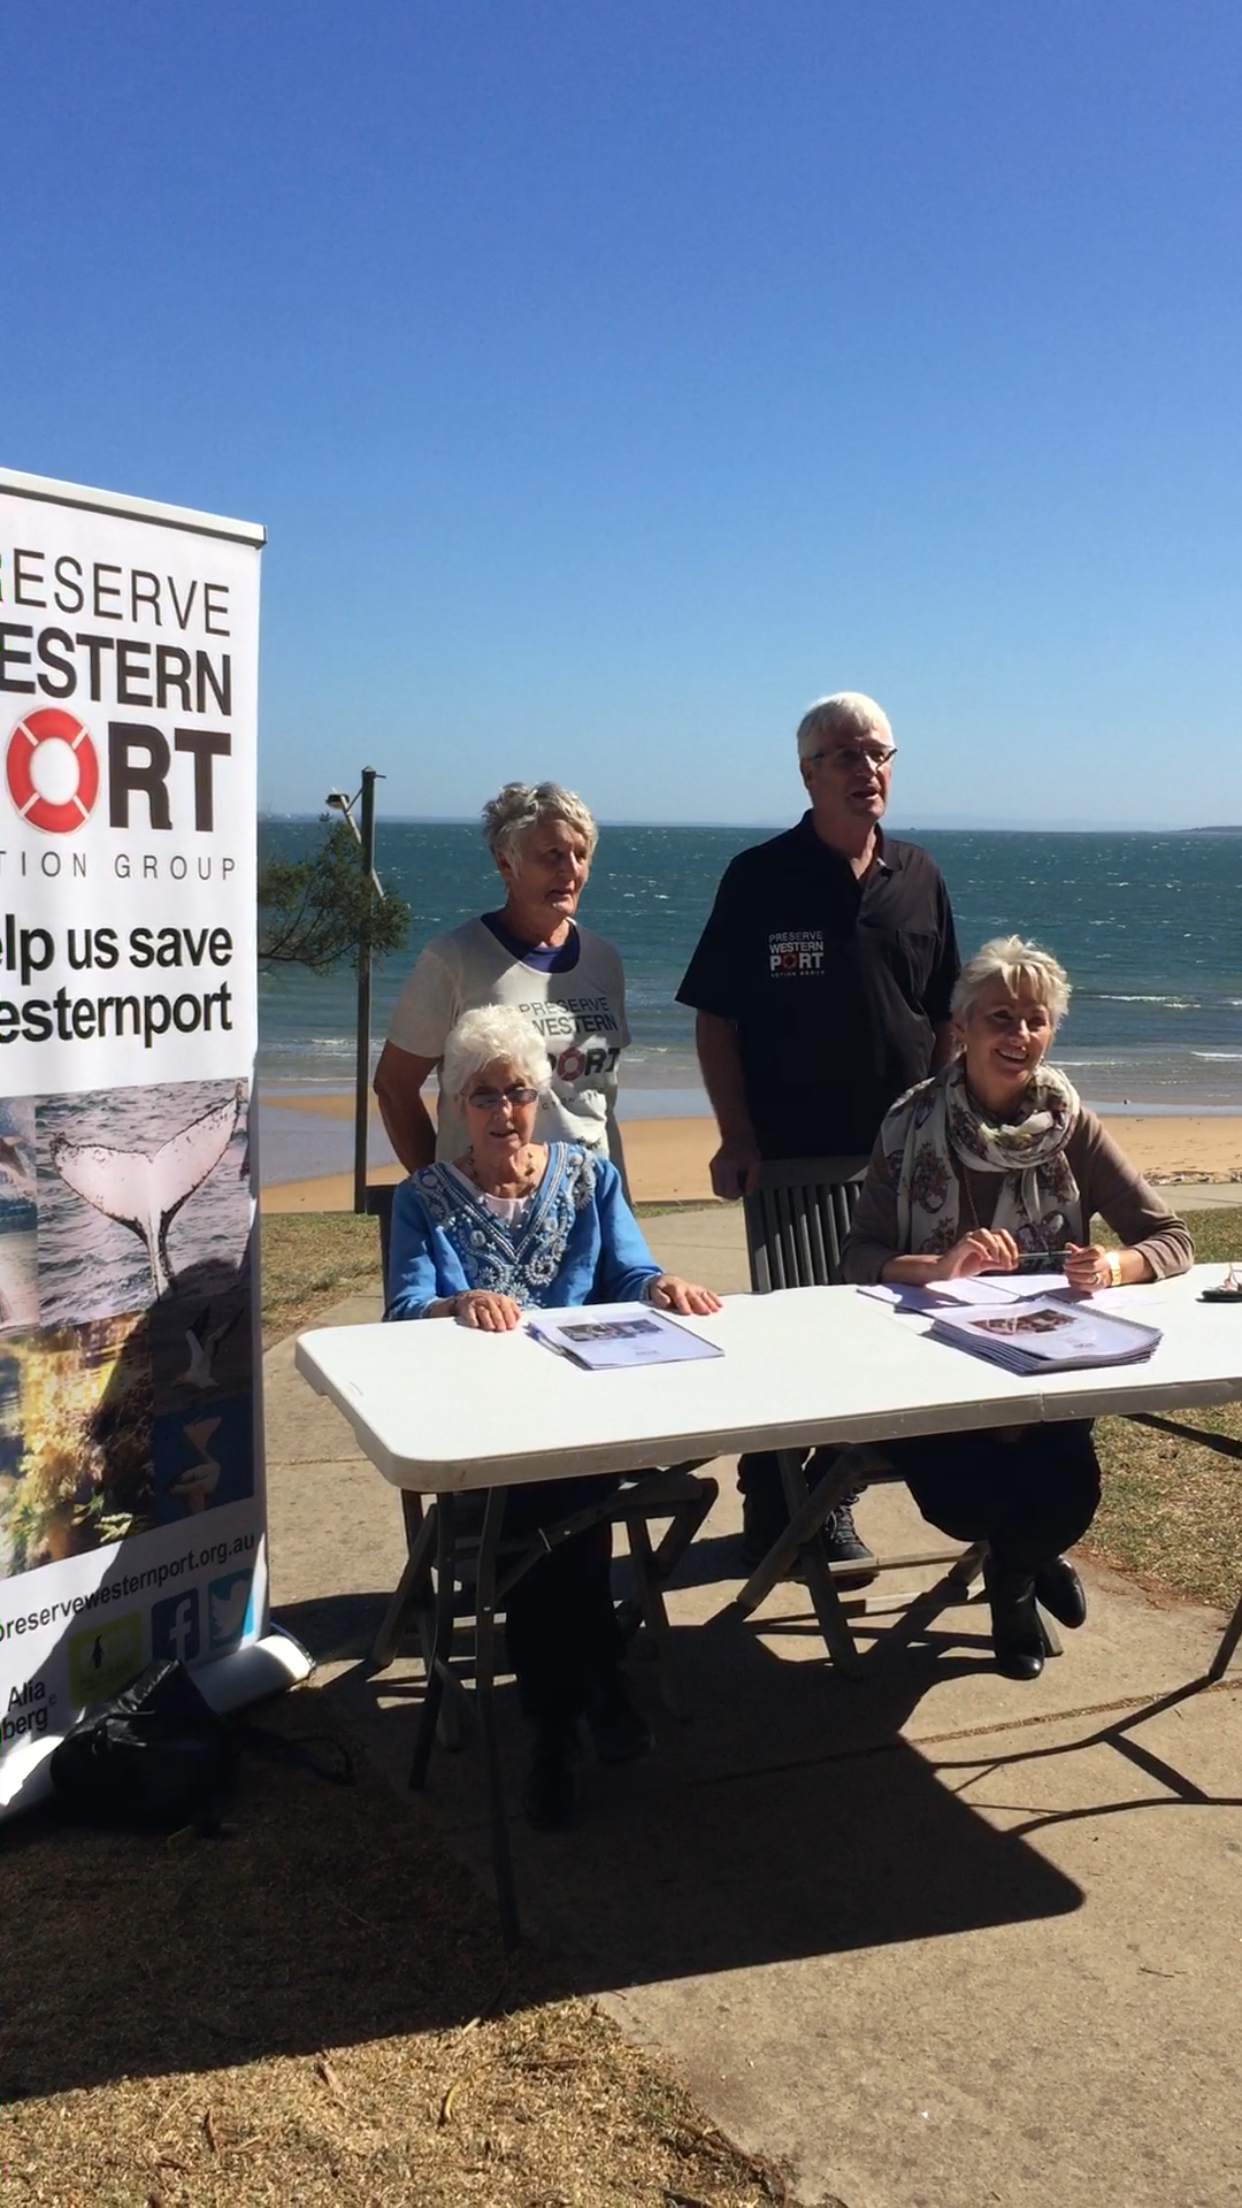 Anne Davie - President - Phillip Island Conservation Society, Jeff Nottle - Chairman - Preserve Westernport Action Group, Phyllis Papps - Author, Pamela Rothfield - Bass Coast Shire Mayor